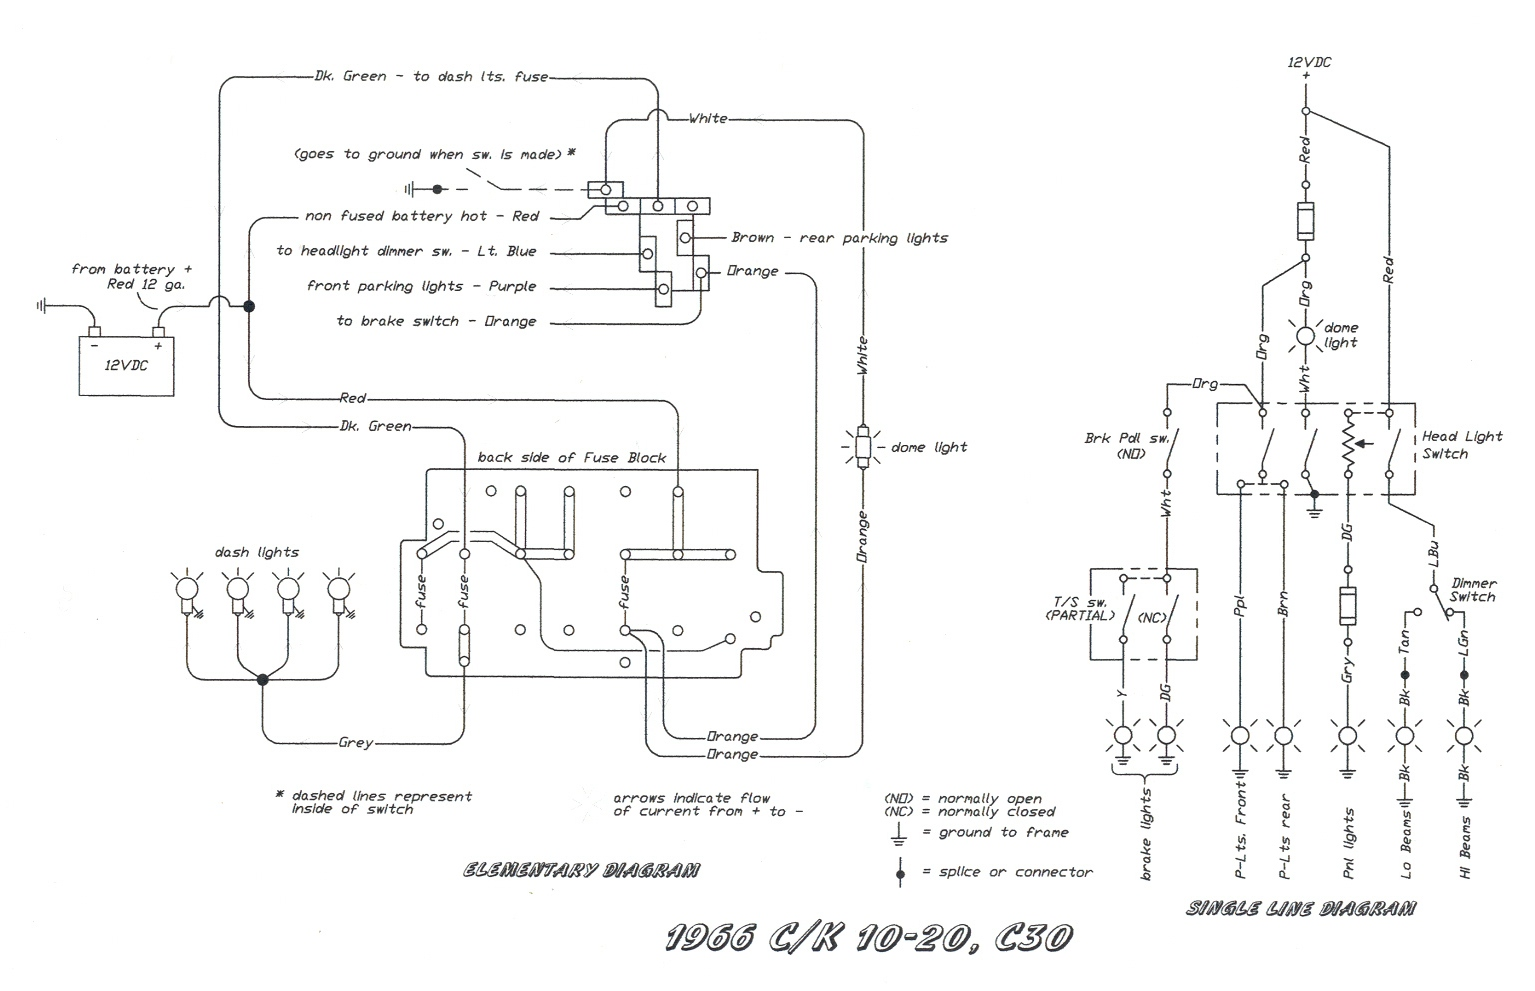 1972 jeep cj5 headlight switch wiring diagram schematic diagram1972 jeep truck headlight wiring data diagram schematic [ 1535 x 991 Pixel ]